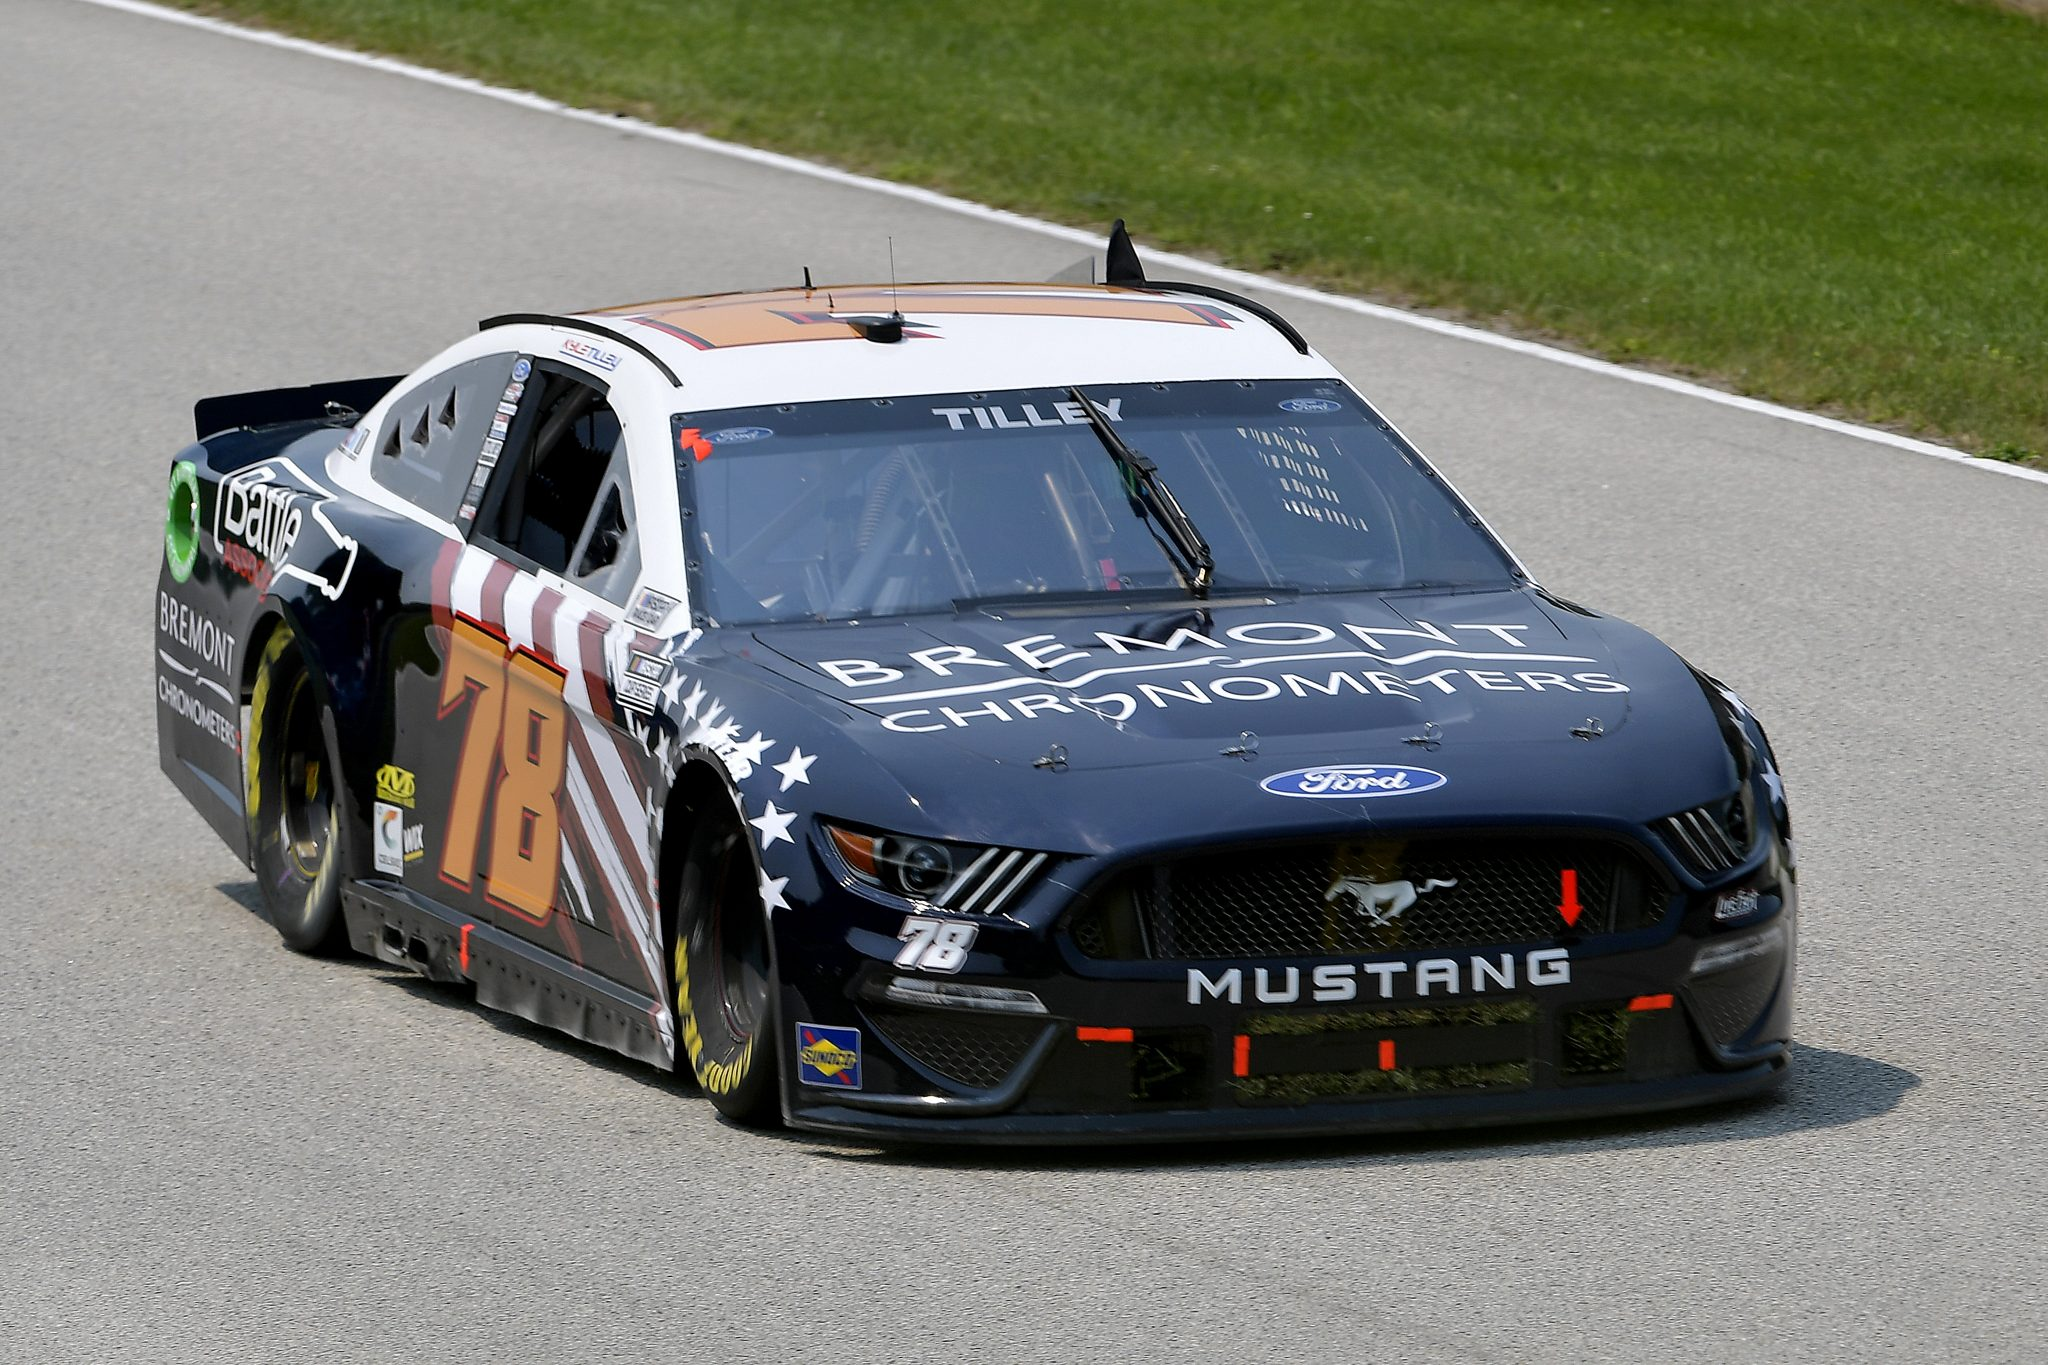 ELKHART LAKE, WISCONSIN - JULY 03: Kyle Tilley, driver of the #78 Bremont/Battle Associates Ford, drives during practice for the NASCAR Cup Series Jockey Made in America 250 Presented by Kwik Trip at Road America on July 03, 2021 in Elkhart Lake, Wisconsin. (Photo by Logan Riely/Getty Images)   Getty Images